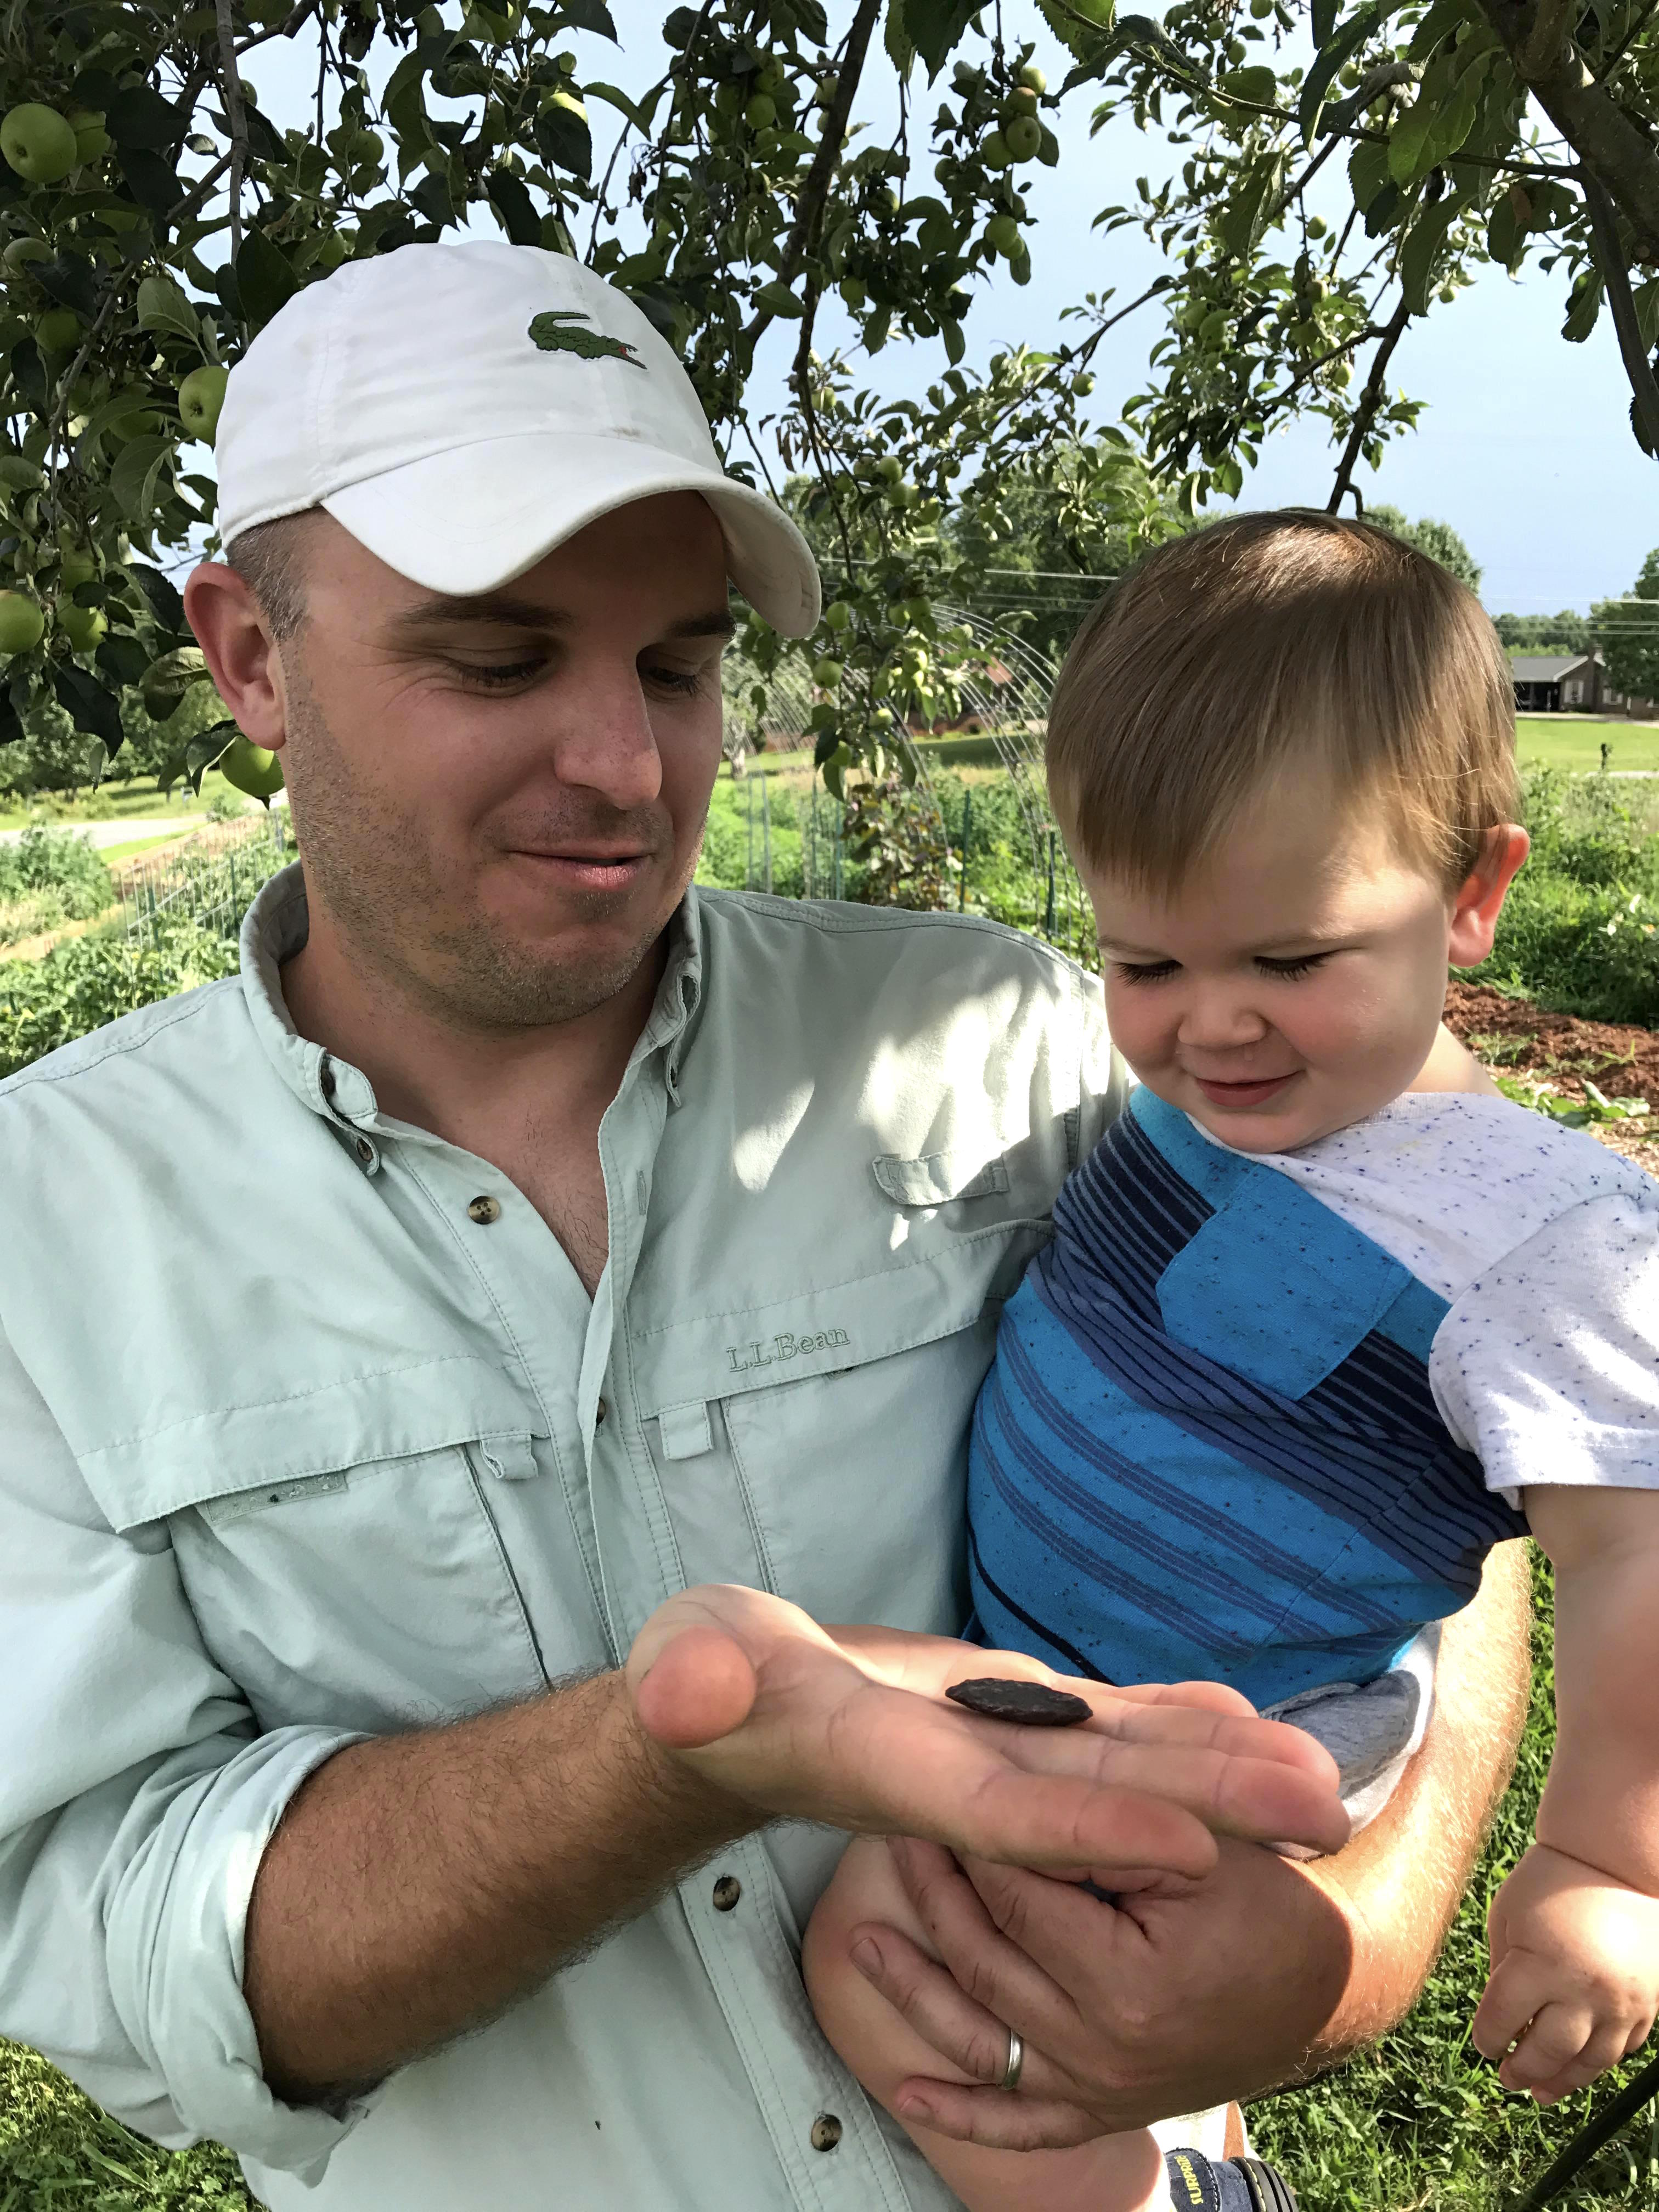 University of Georgia Cooperative Extension Agent Josh Fuder and his son, Graham, inspect an ancient artifact he uncovered in his backyard garden. As a child, Fuder loved digging in the soil for buried treasures and pretending to be an archeologist. He hopes his son inherits his love of items from days gone by.